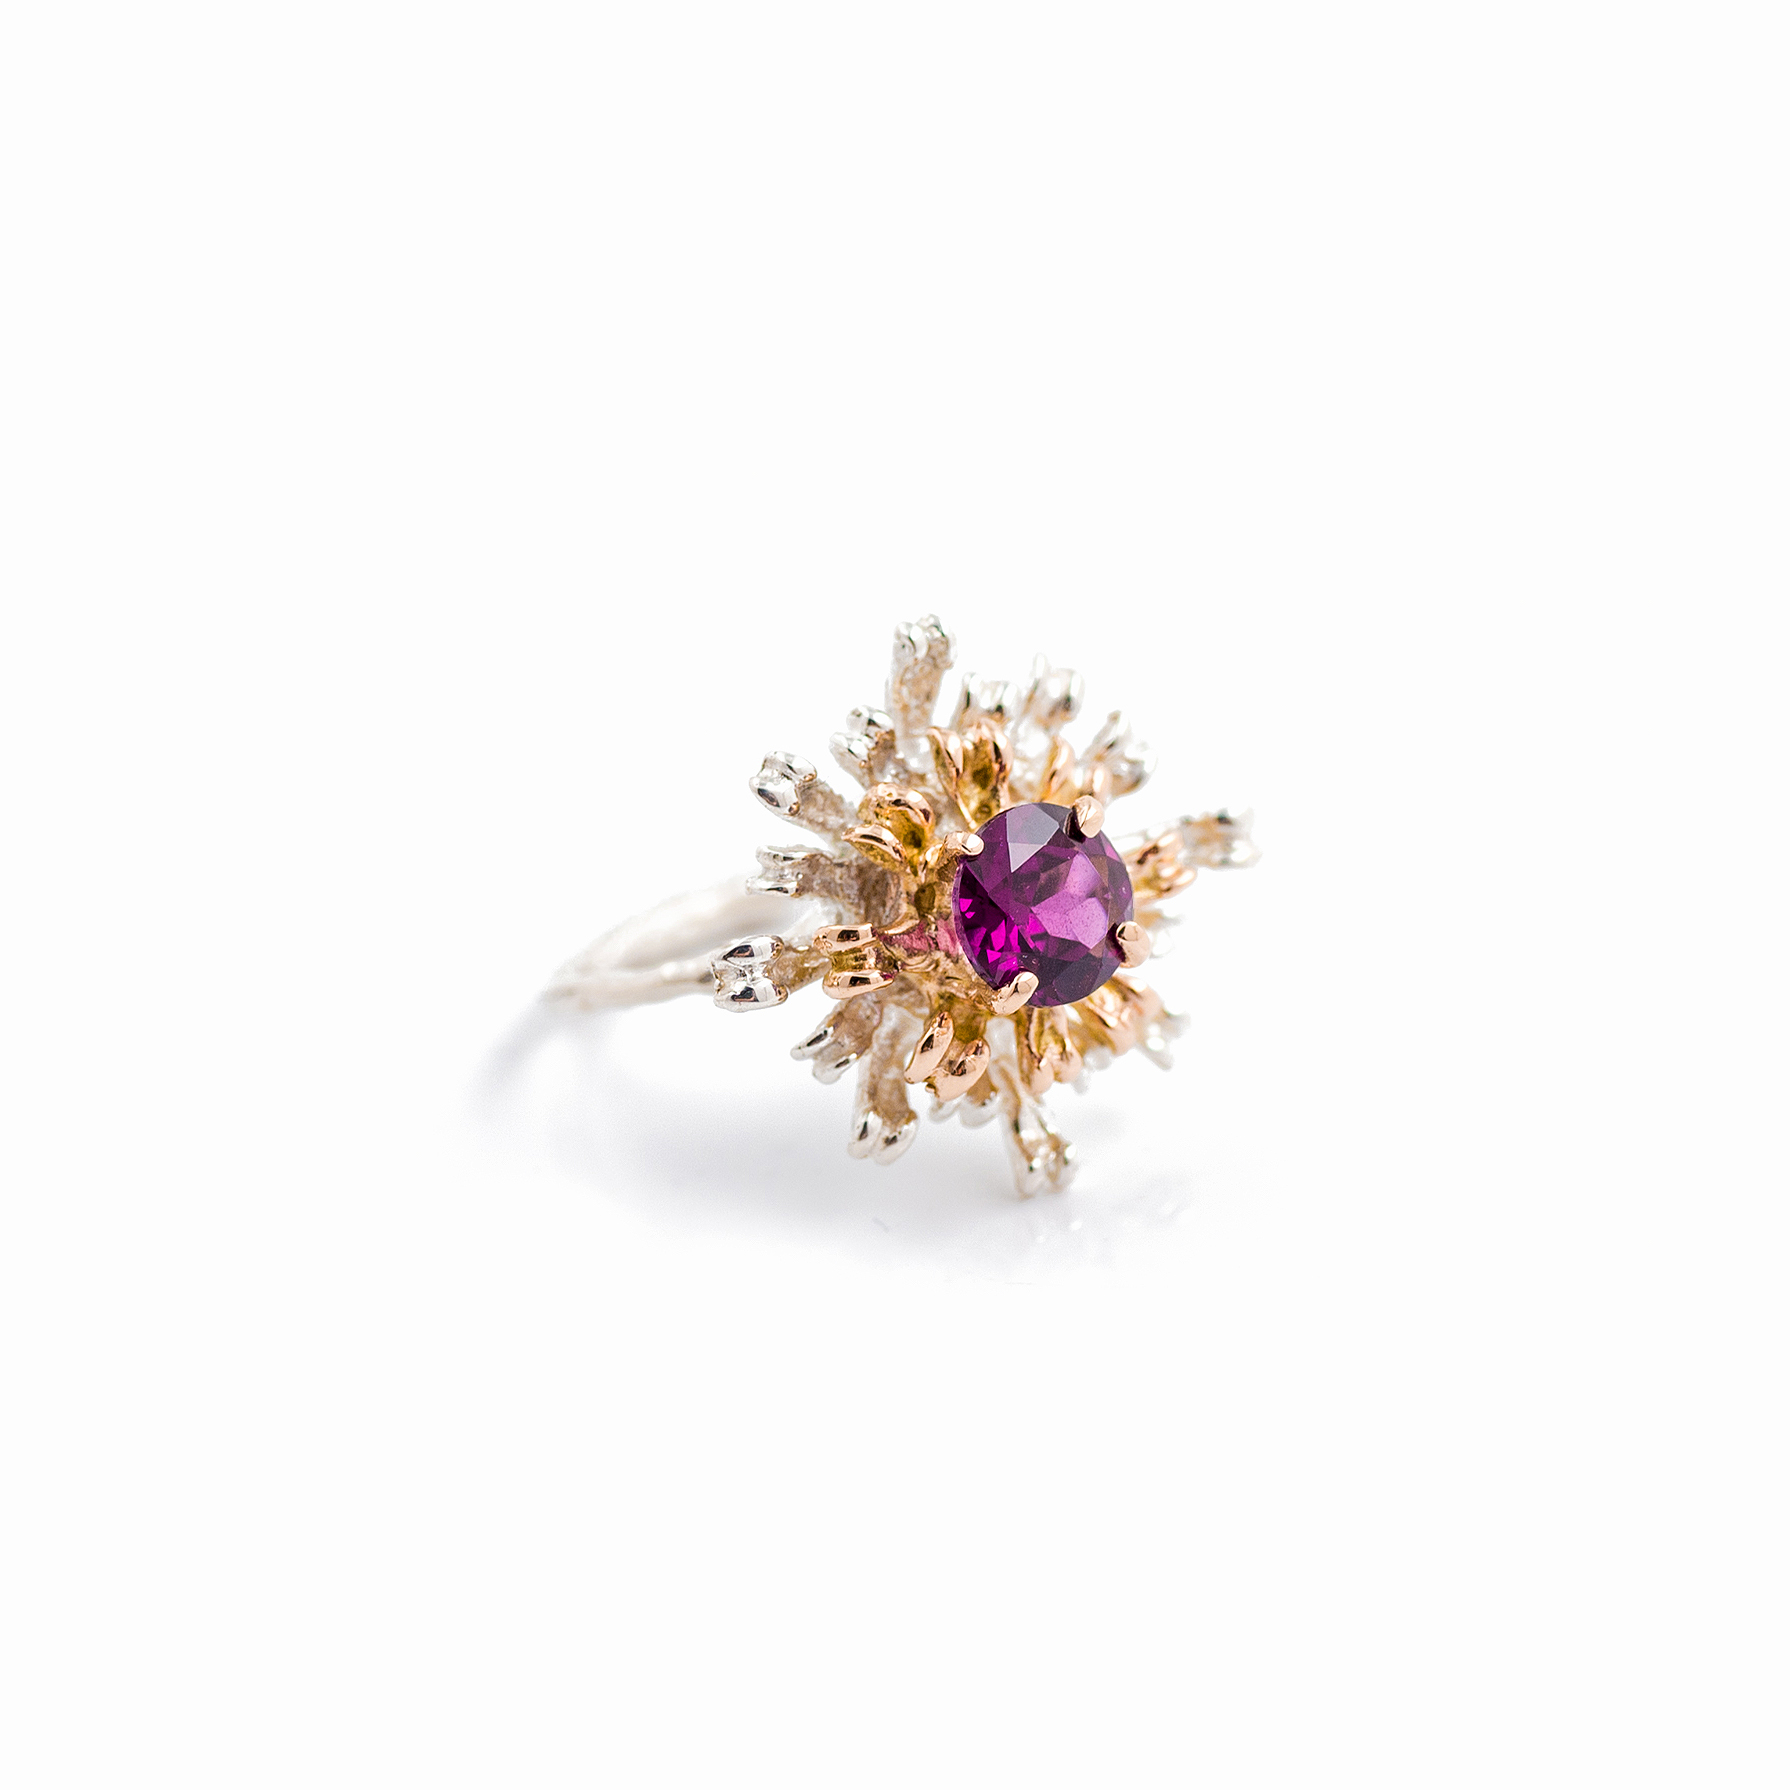 The Flowers Remaining Ring | 9ct yellow gold, sterling silver, garnet.